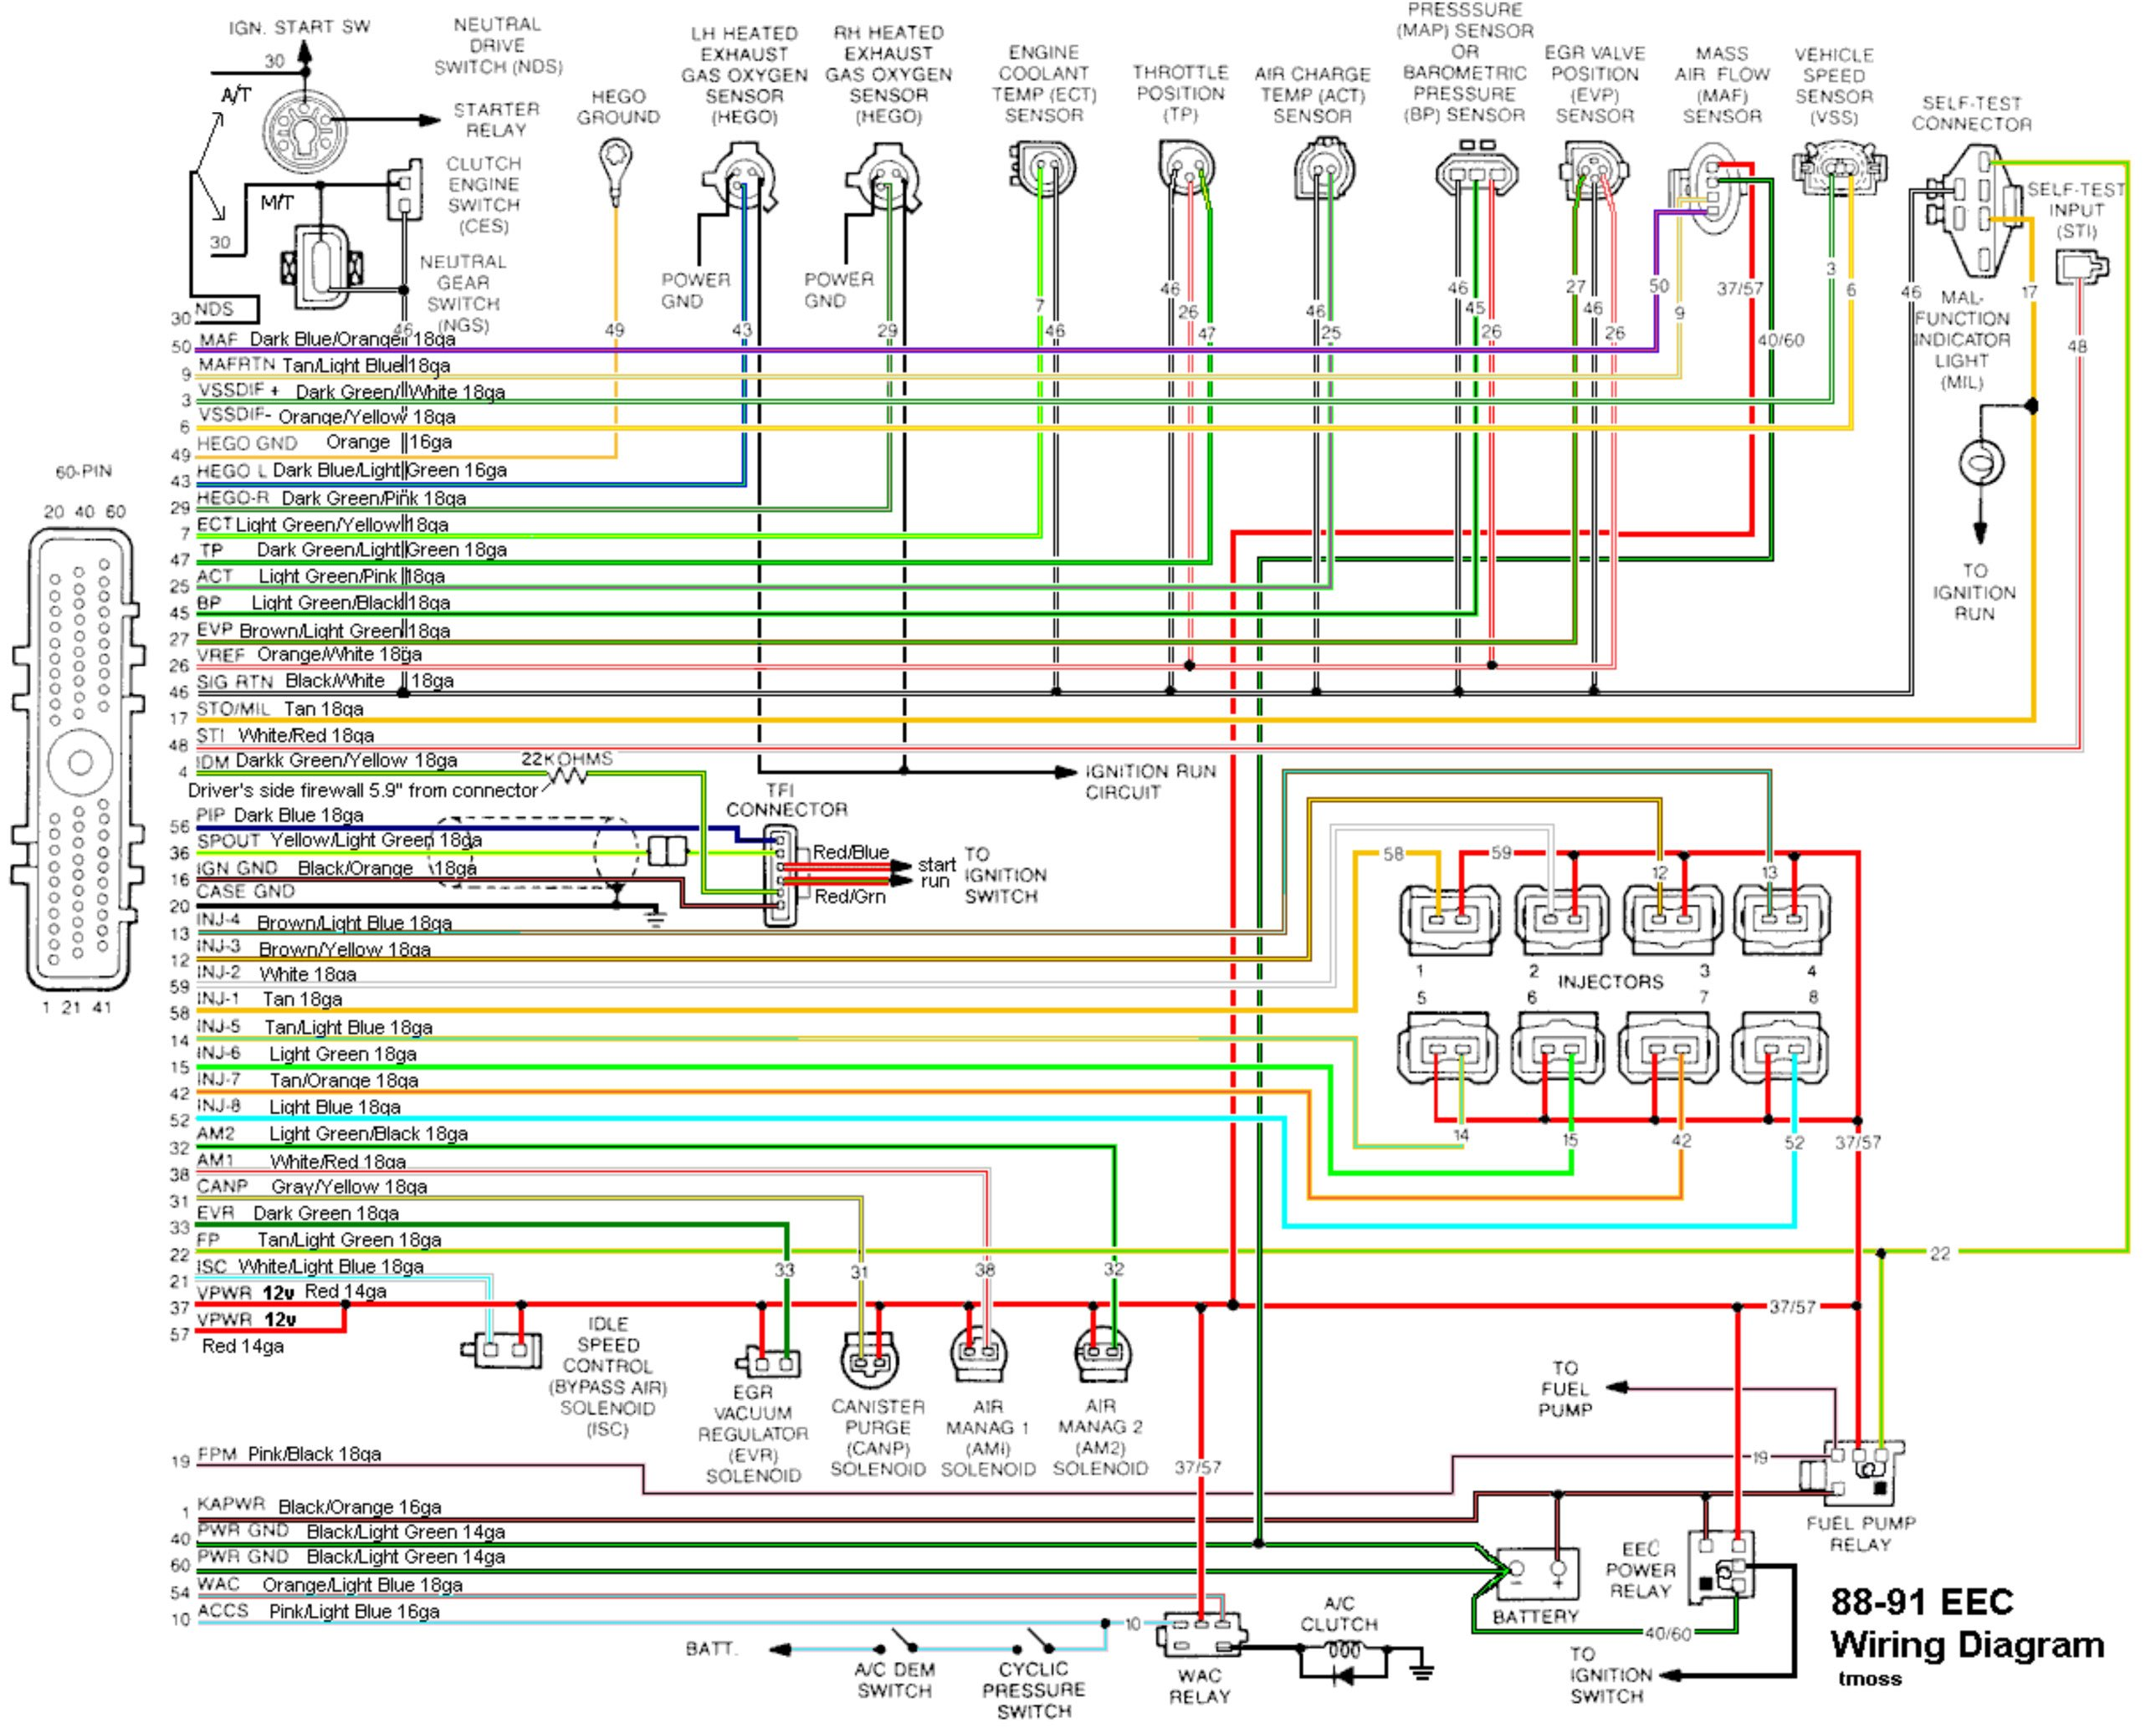 [QMVU_8575]  302 to 5.0 EFI Swap Computer Pins | Ford Mustang Forum | 1990 Mustang Wiring Diagram 8 Pin |  | All Ford Mustangs